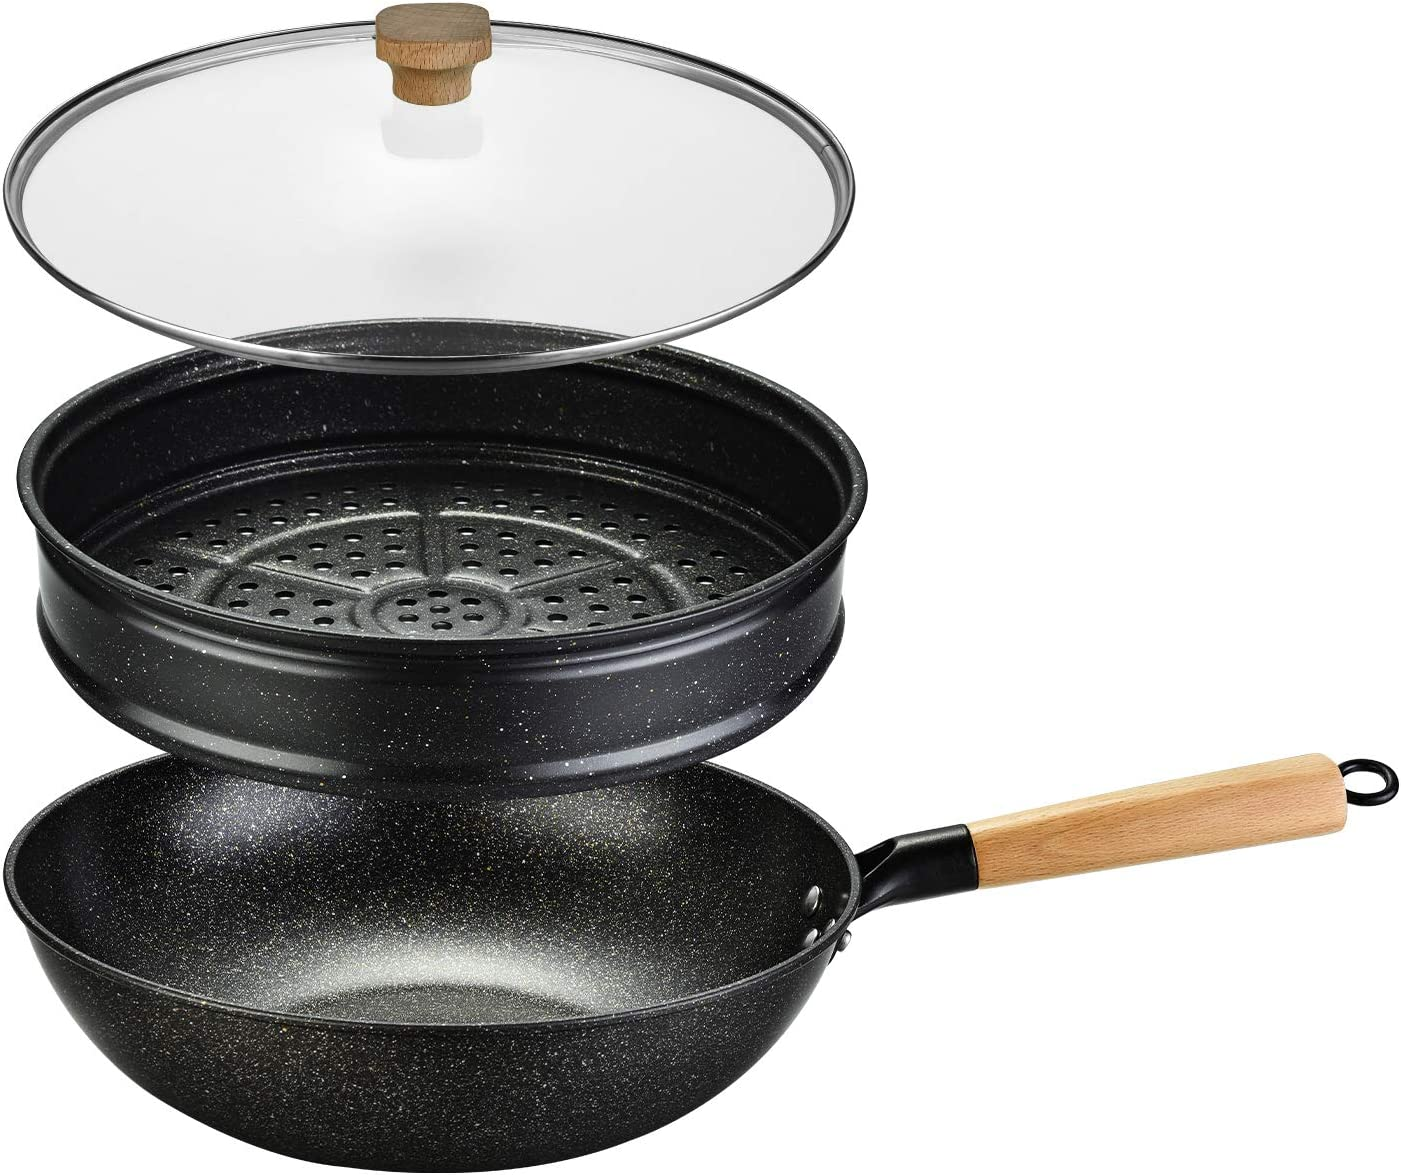 Nonstick Woks and Stir Fry Pans With Lid, Steam Rack, Wok Pan With Lid, Ceramic Wok with Lid, Nonstick Frying Wok Flat Bottom, Induction Compatible